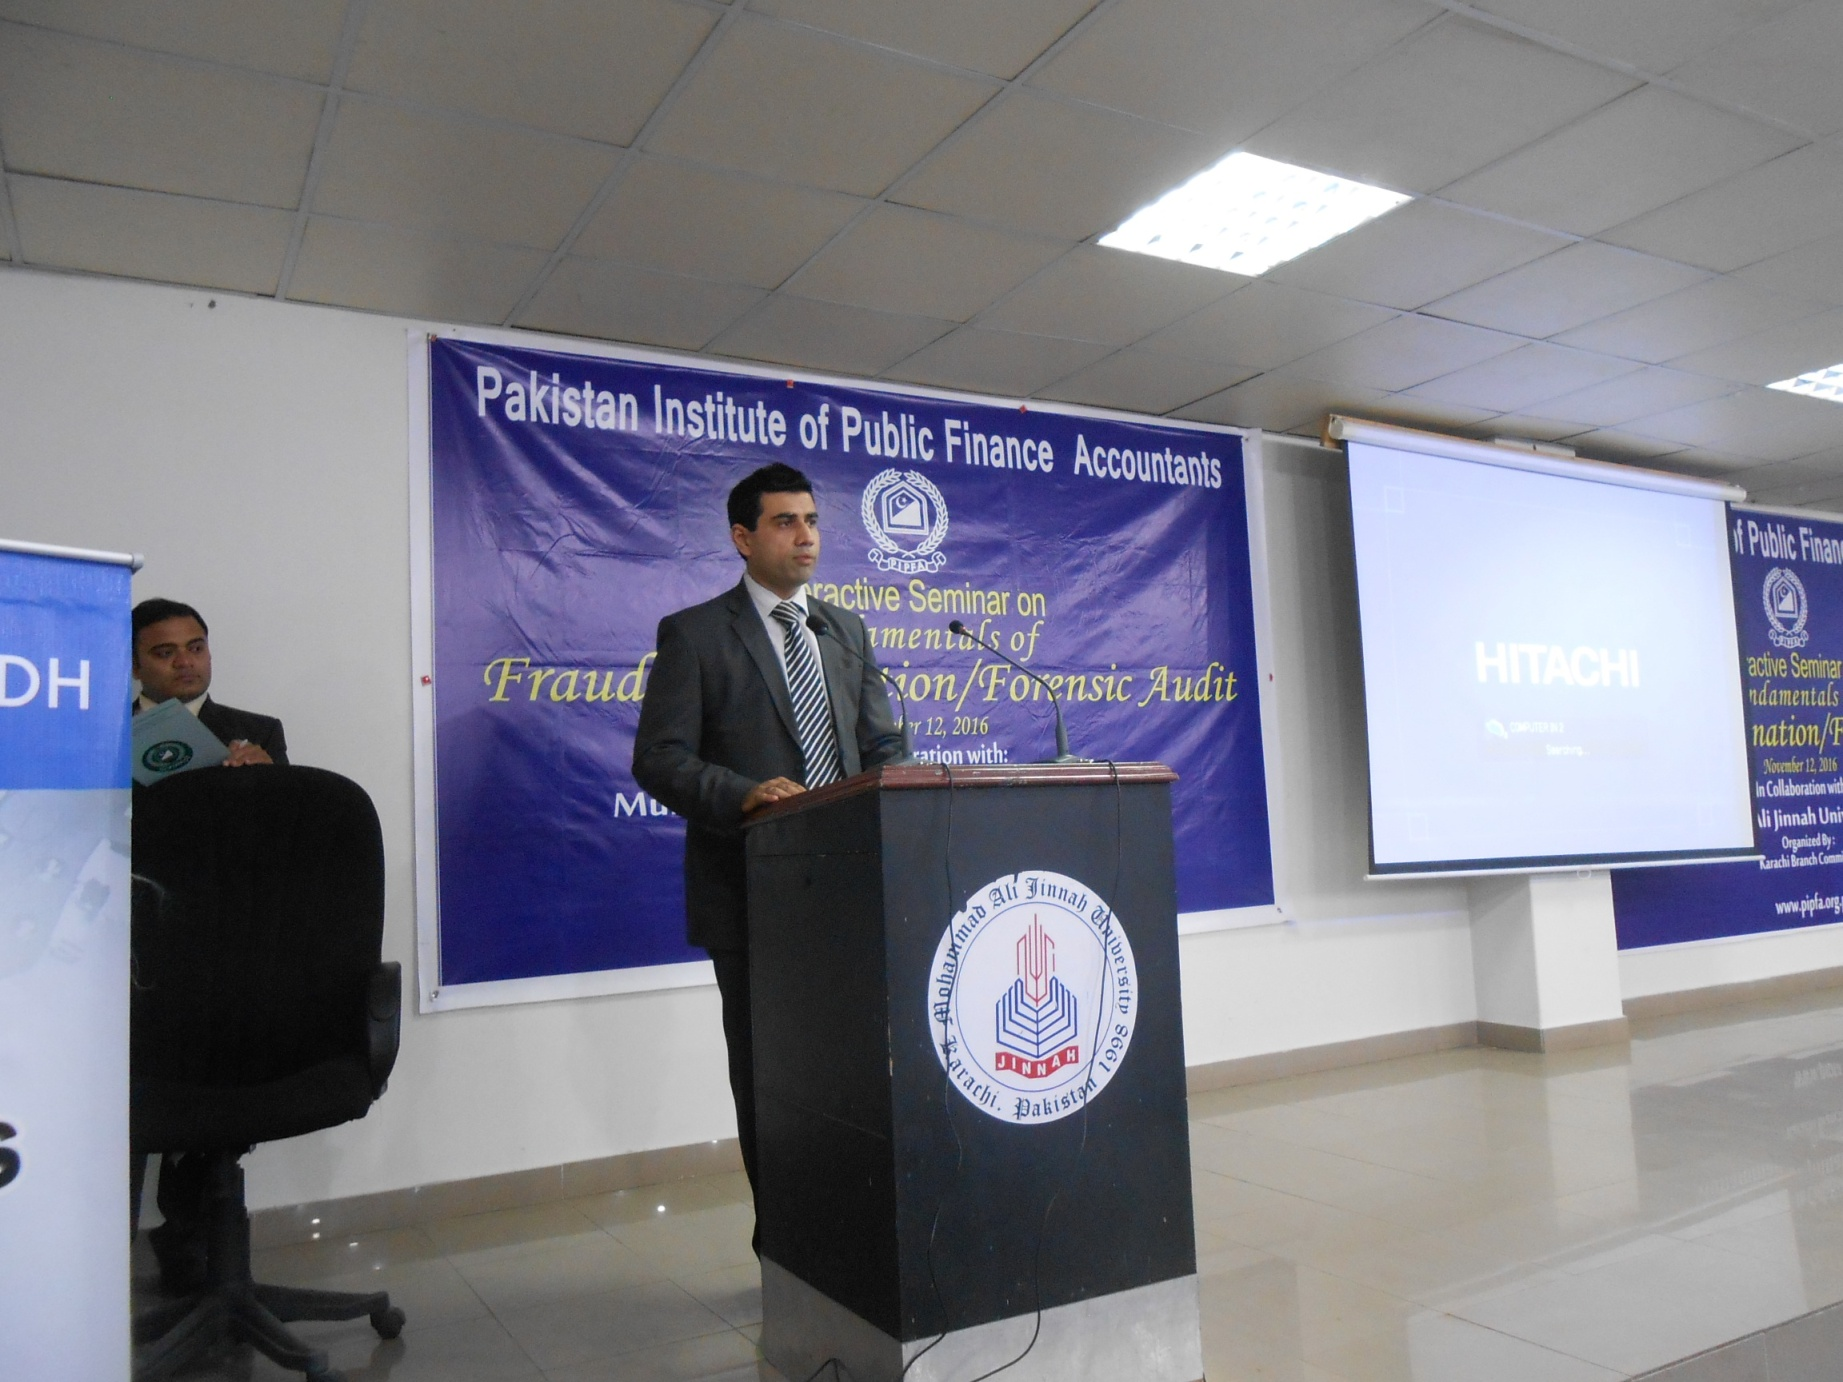 Mr. Imran Umer Chapra welcome the audience